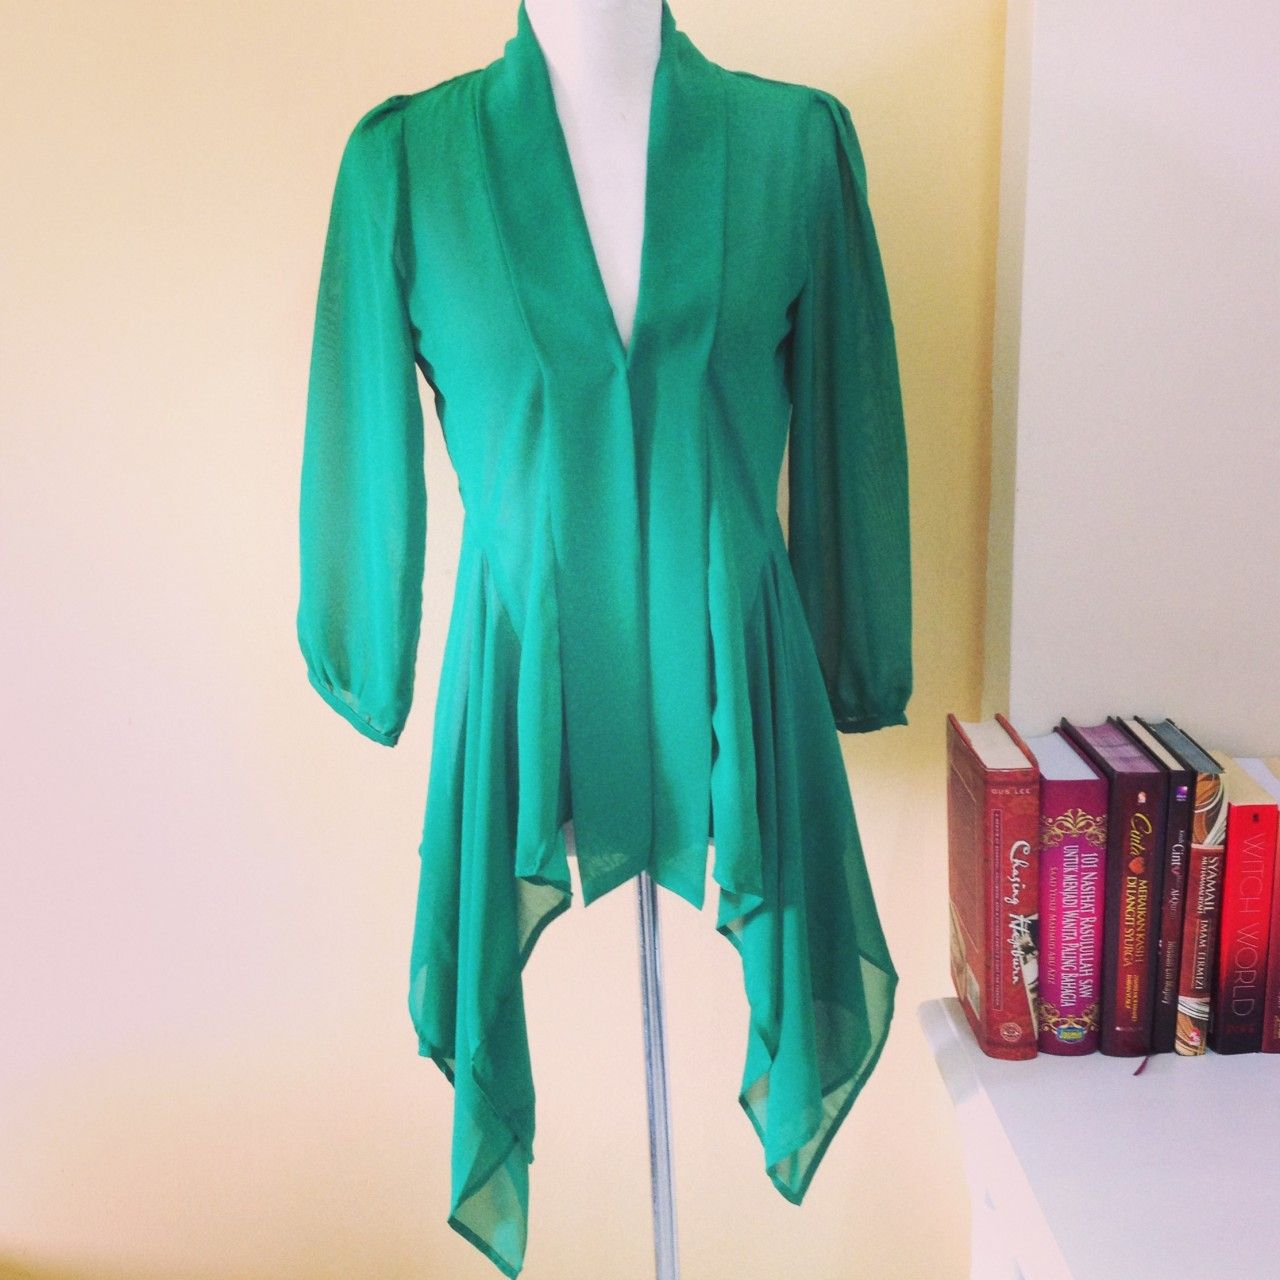 What a lovely green kebaya! If I could get my hands on that ...